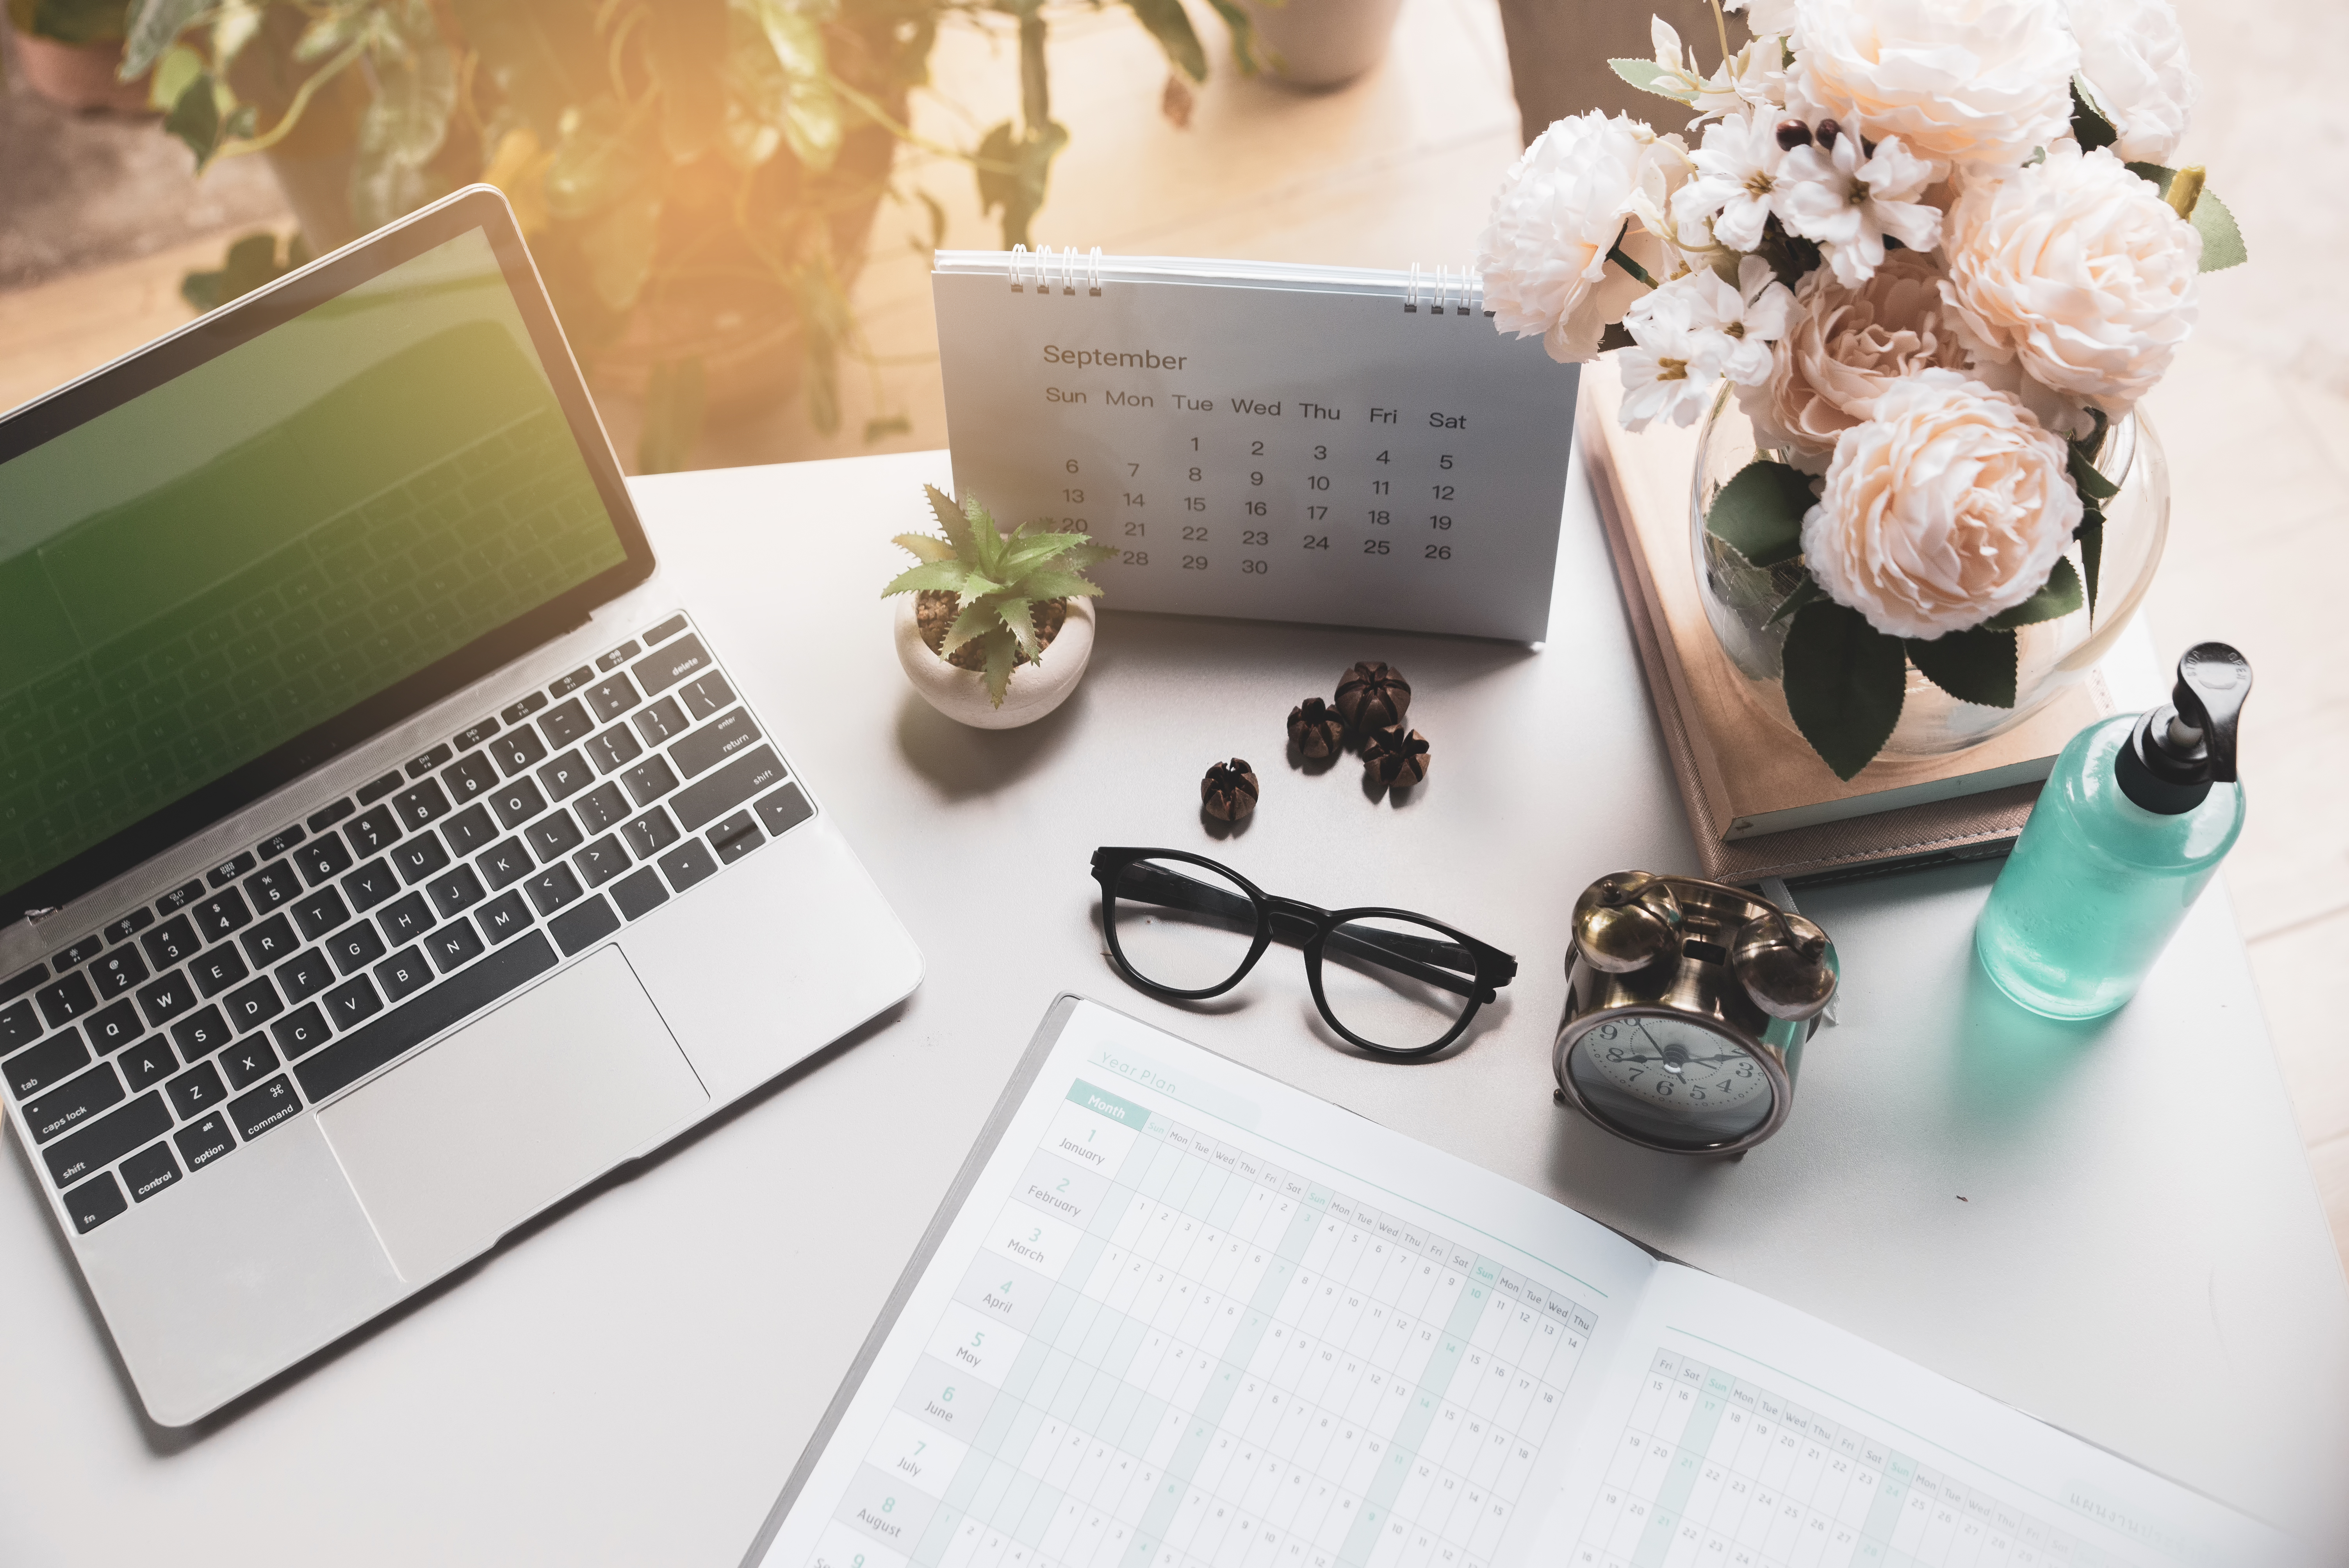 How to Organise Your Event Post-Covid-19